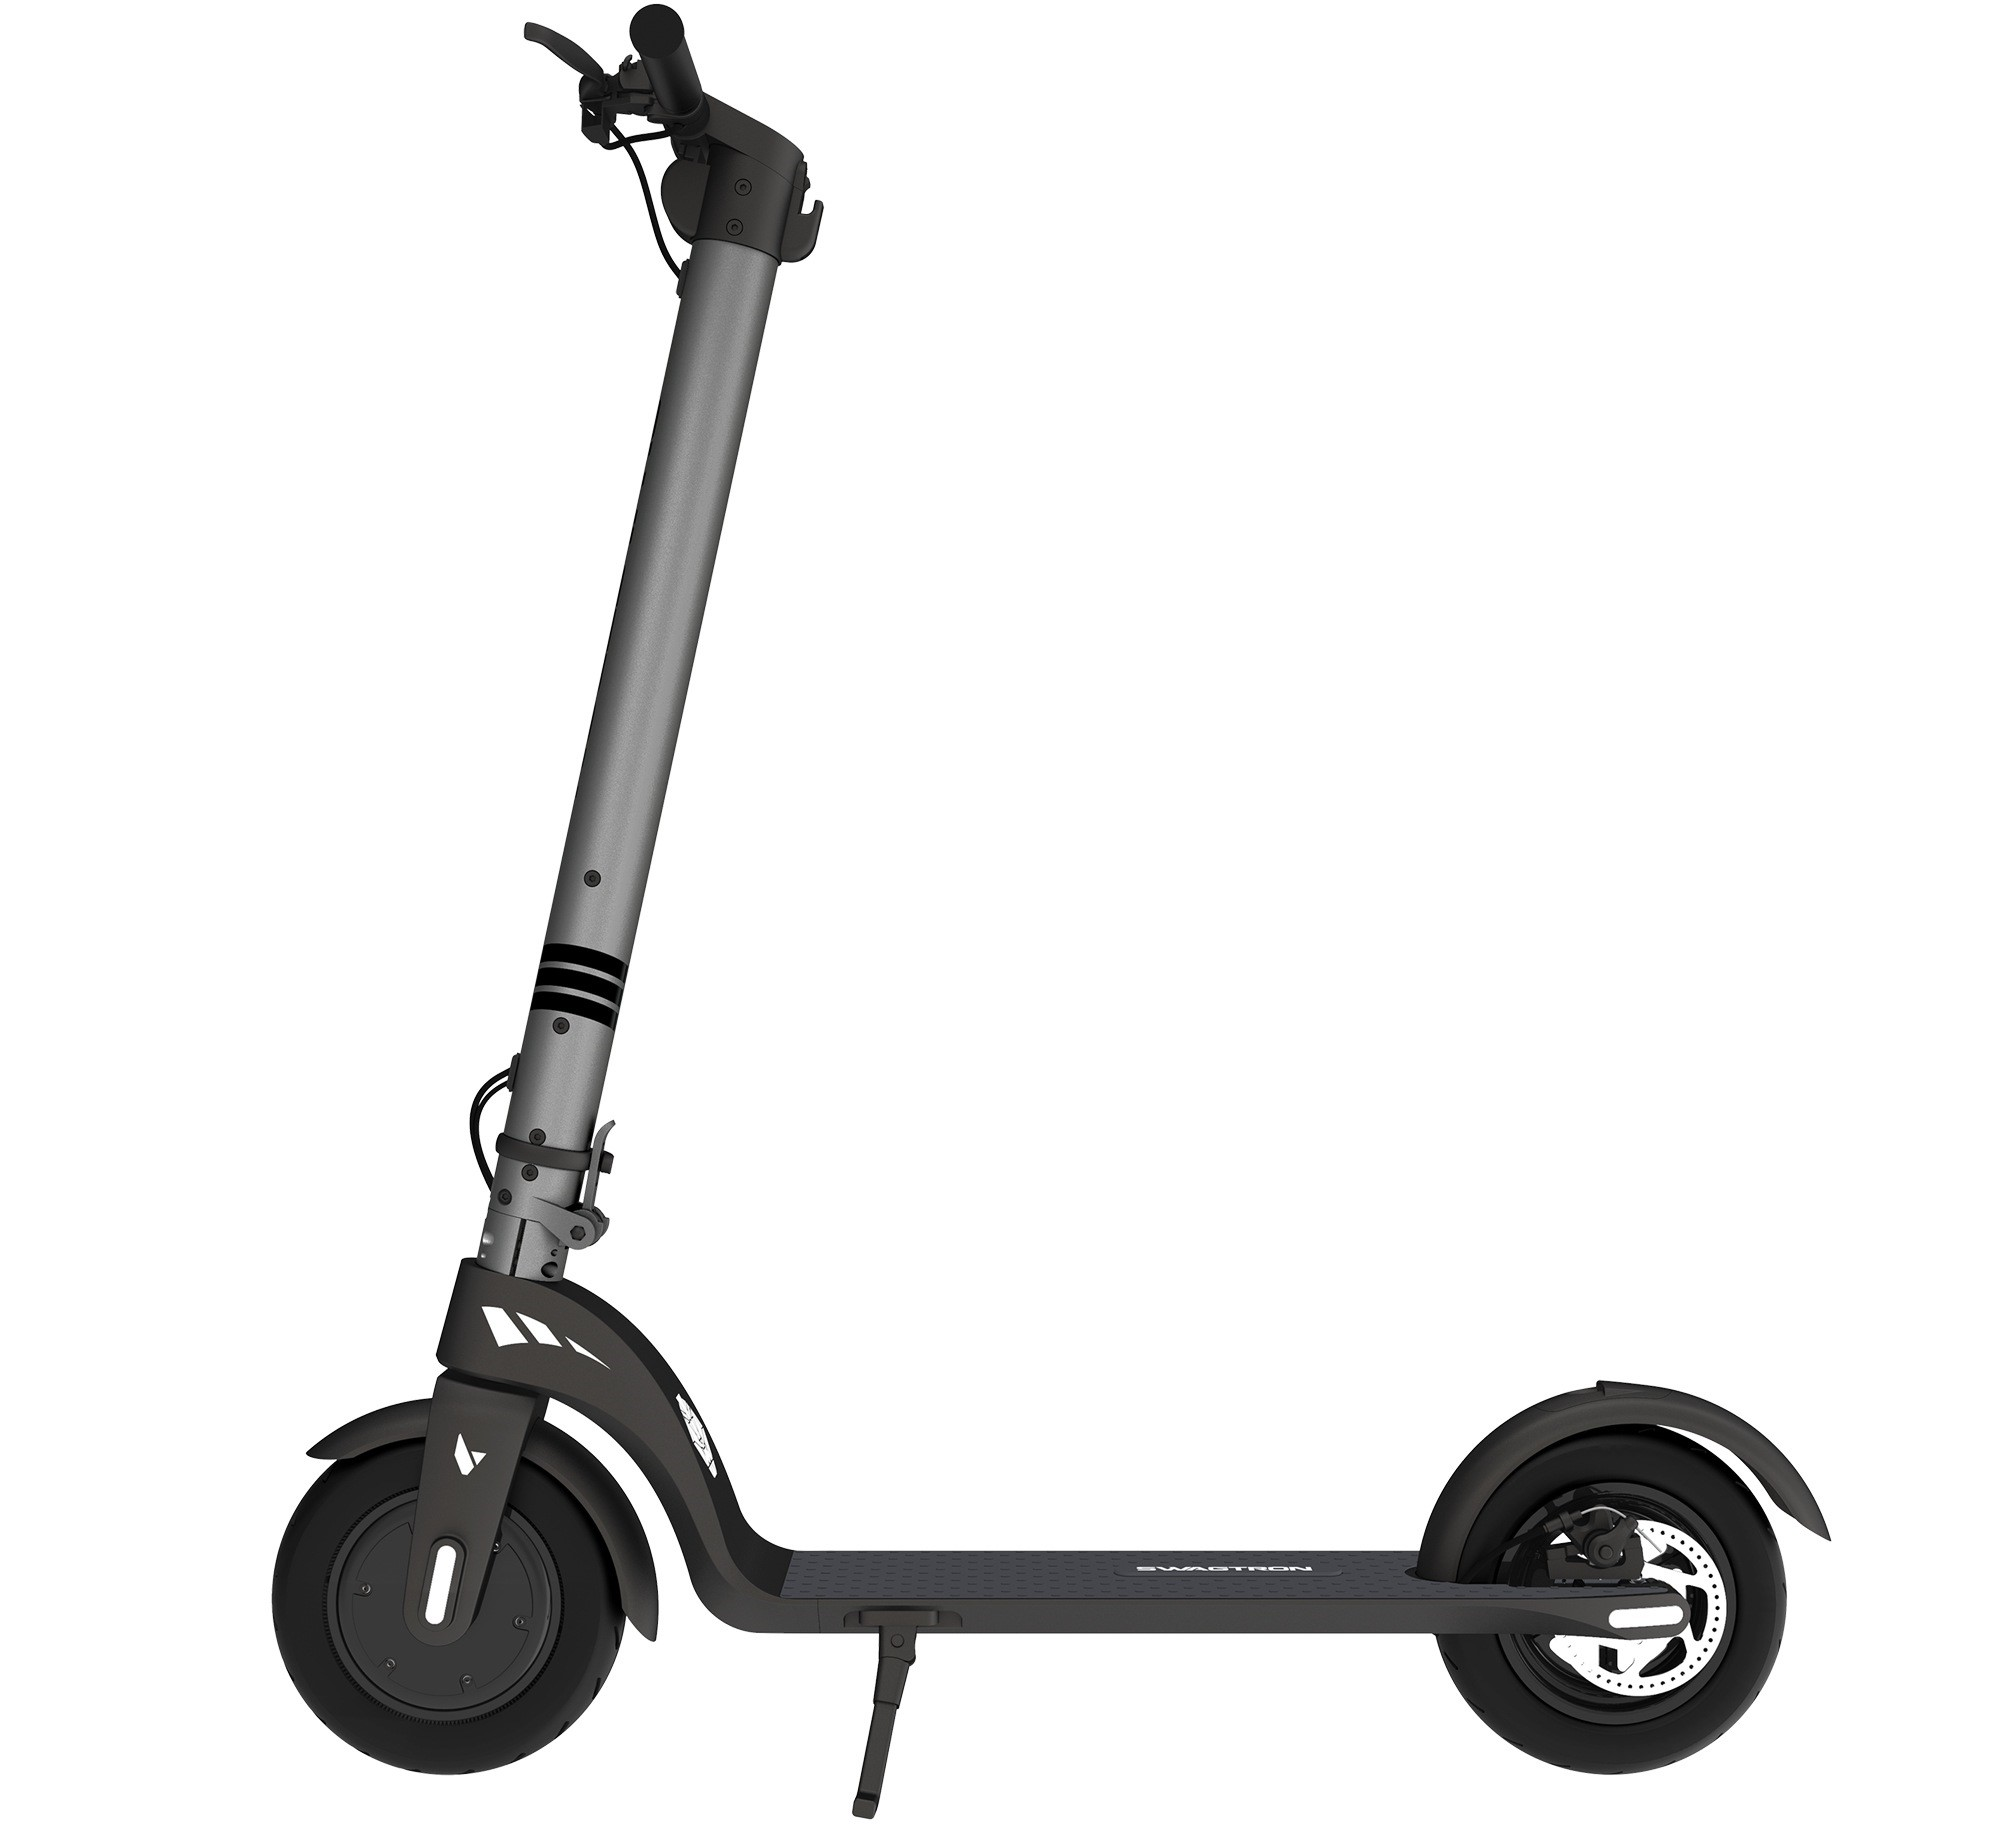 swagtron swagger 7 electric scooter